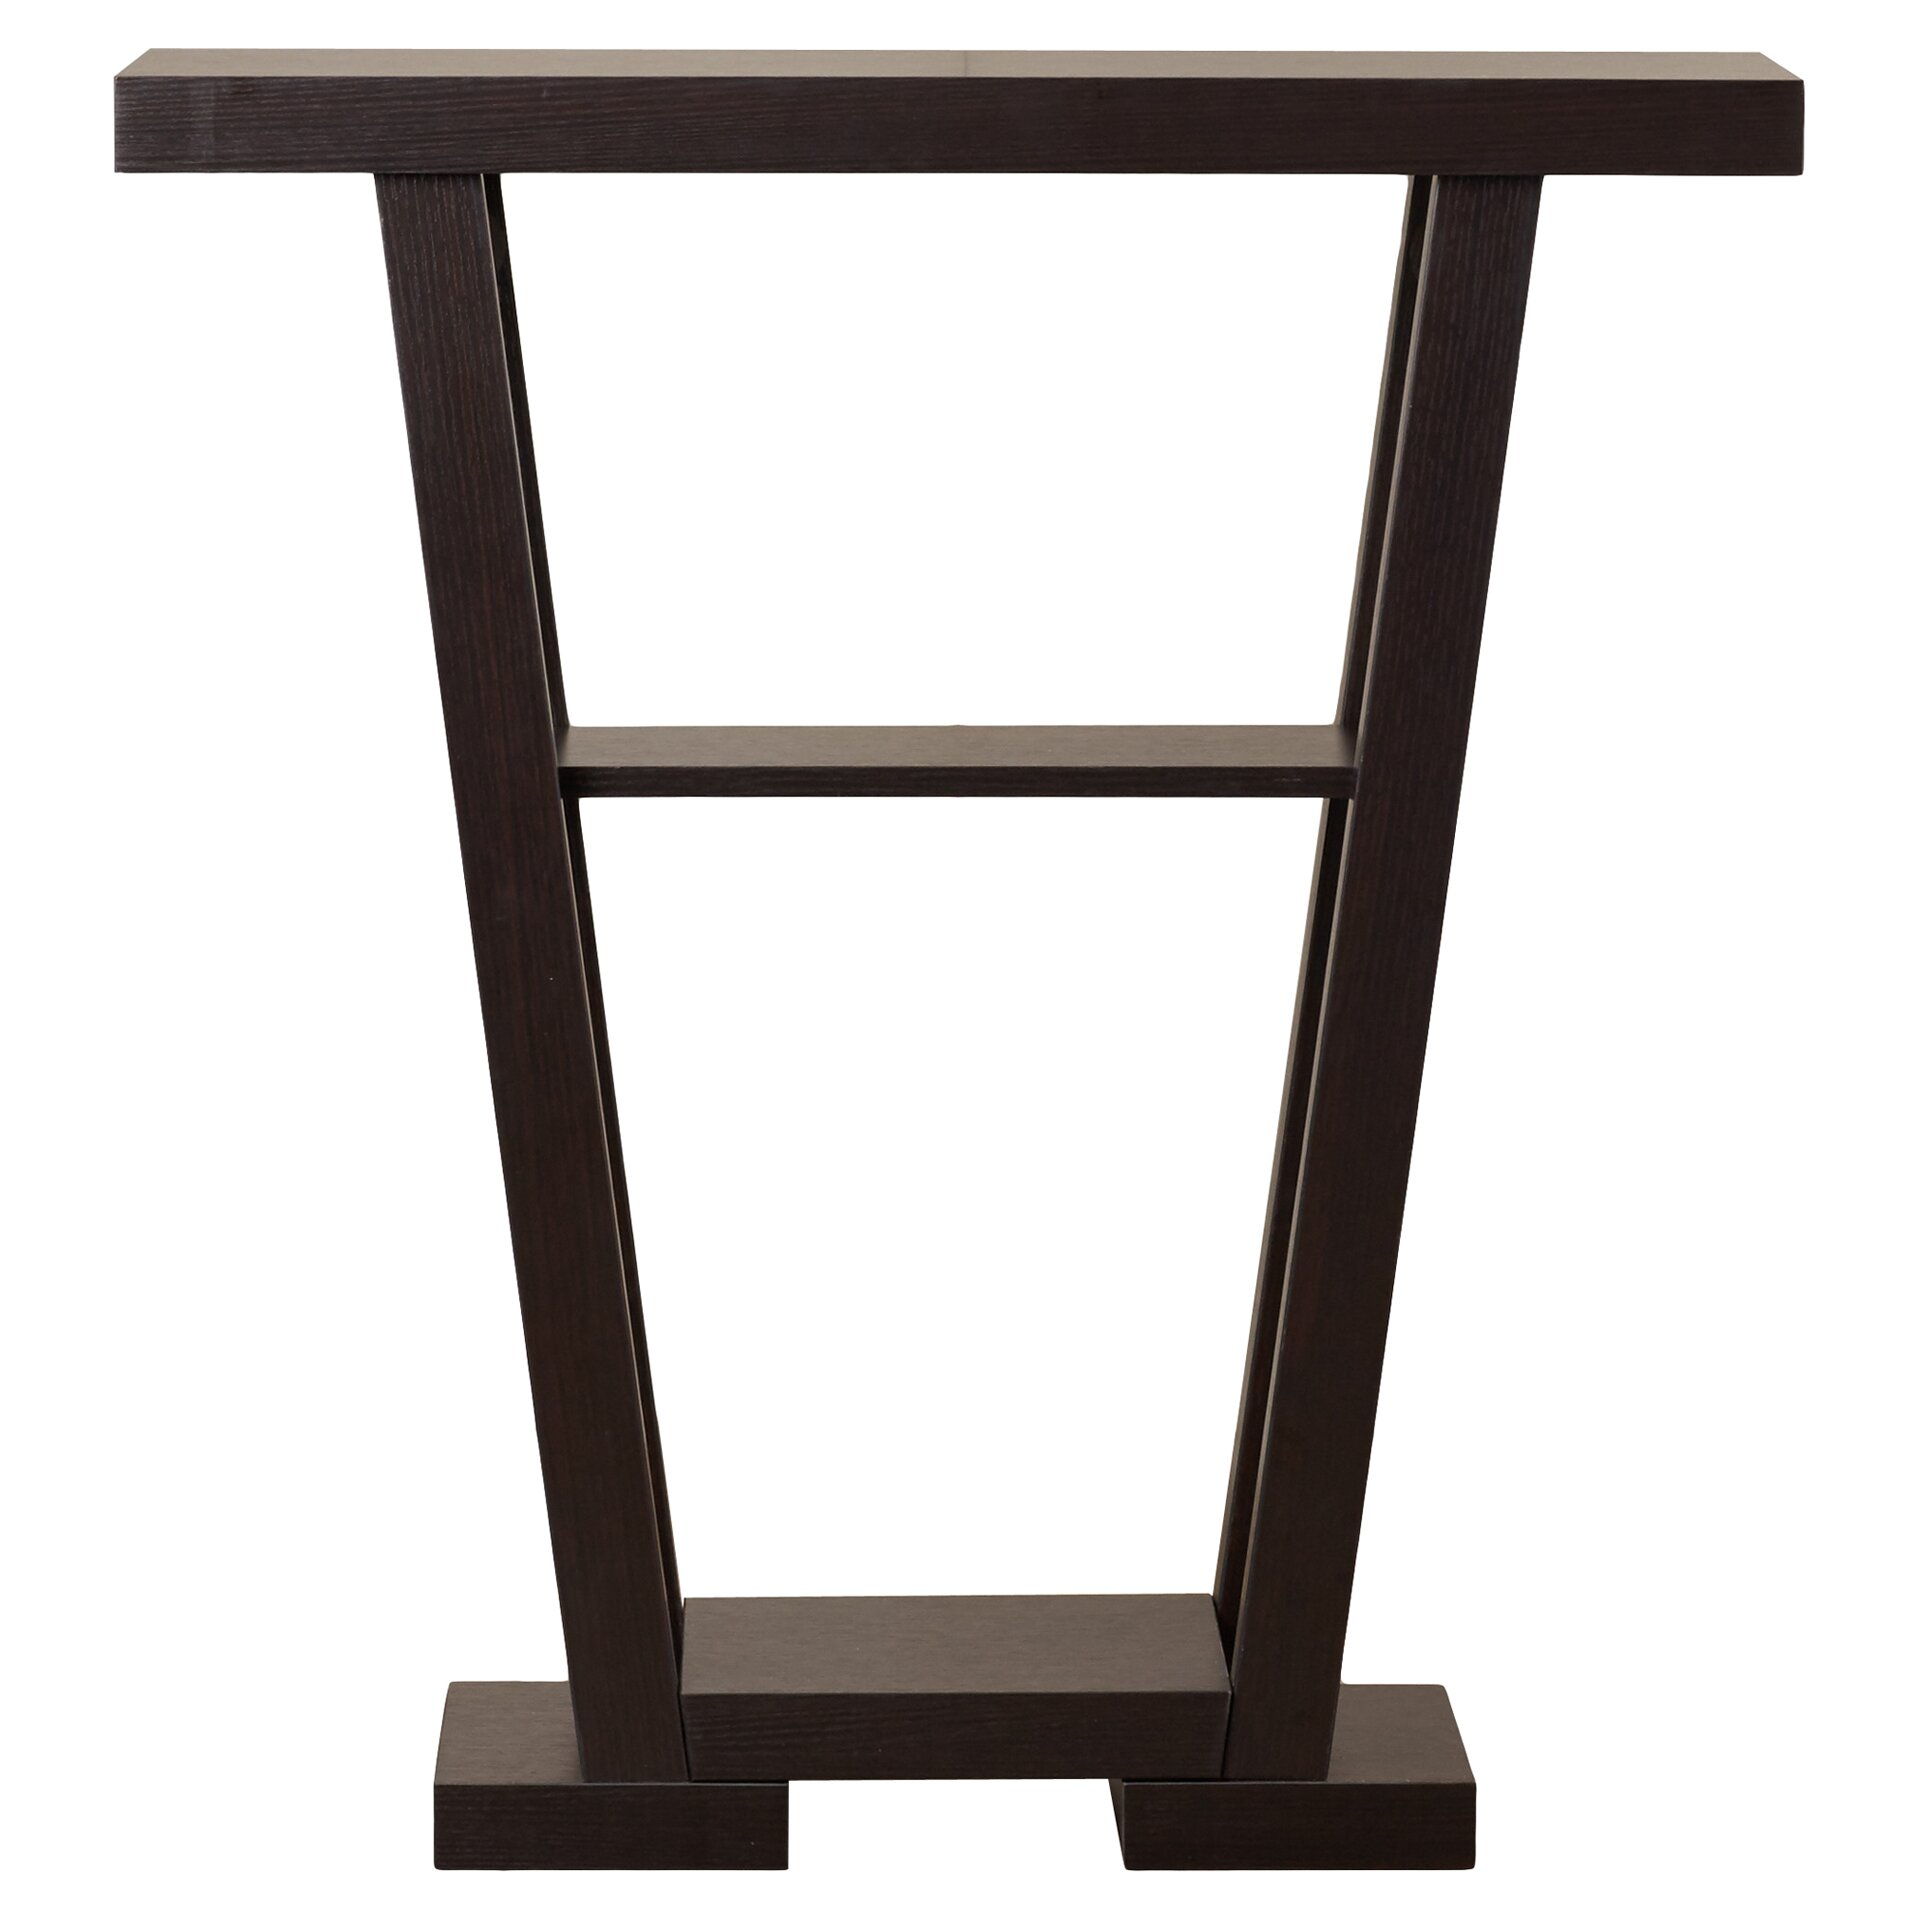 Convenience concepts newport v console table reviews for Sofa table vs console table